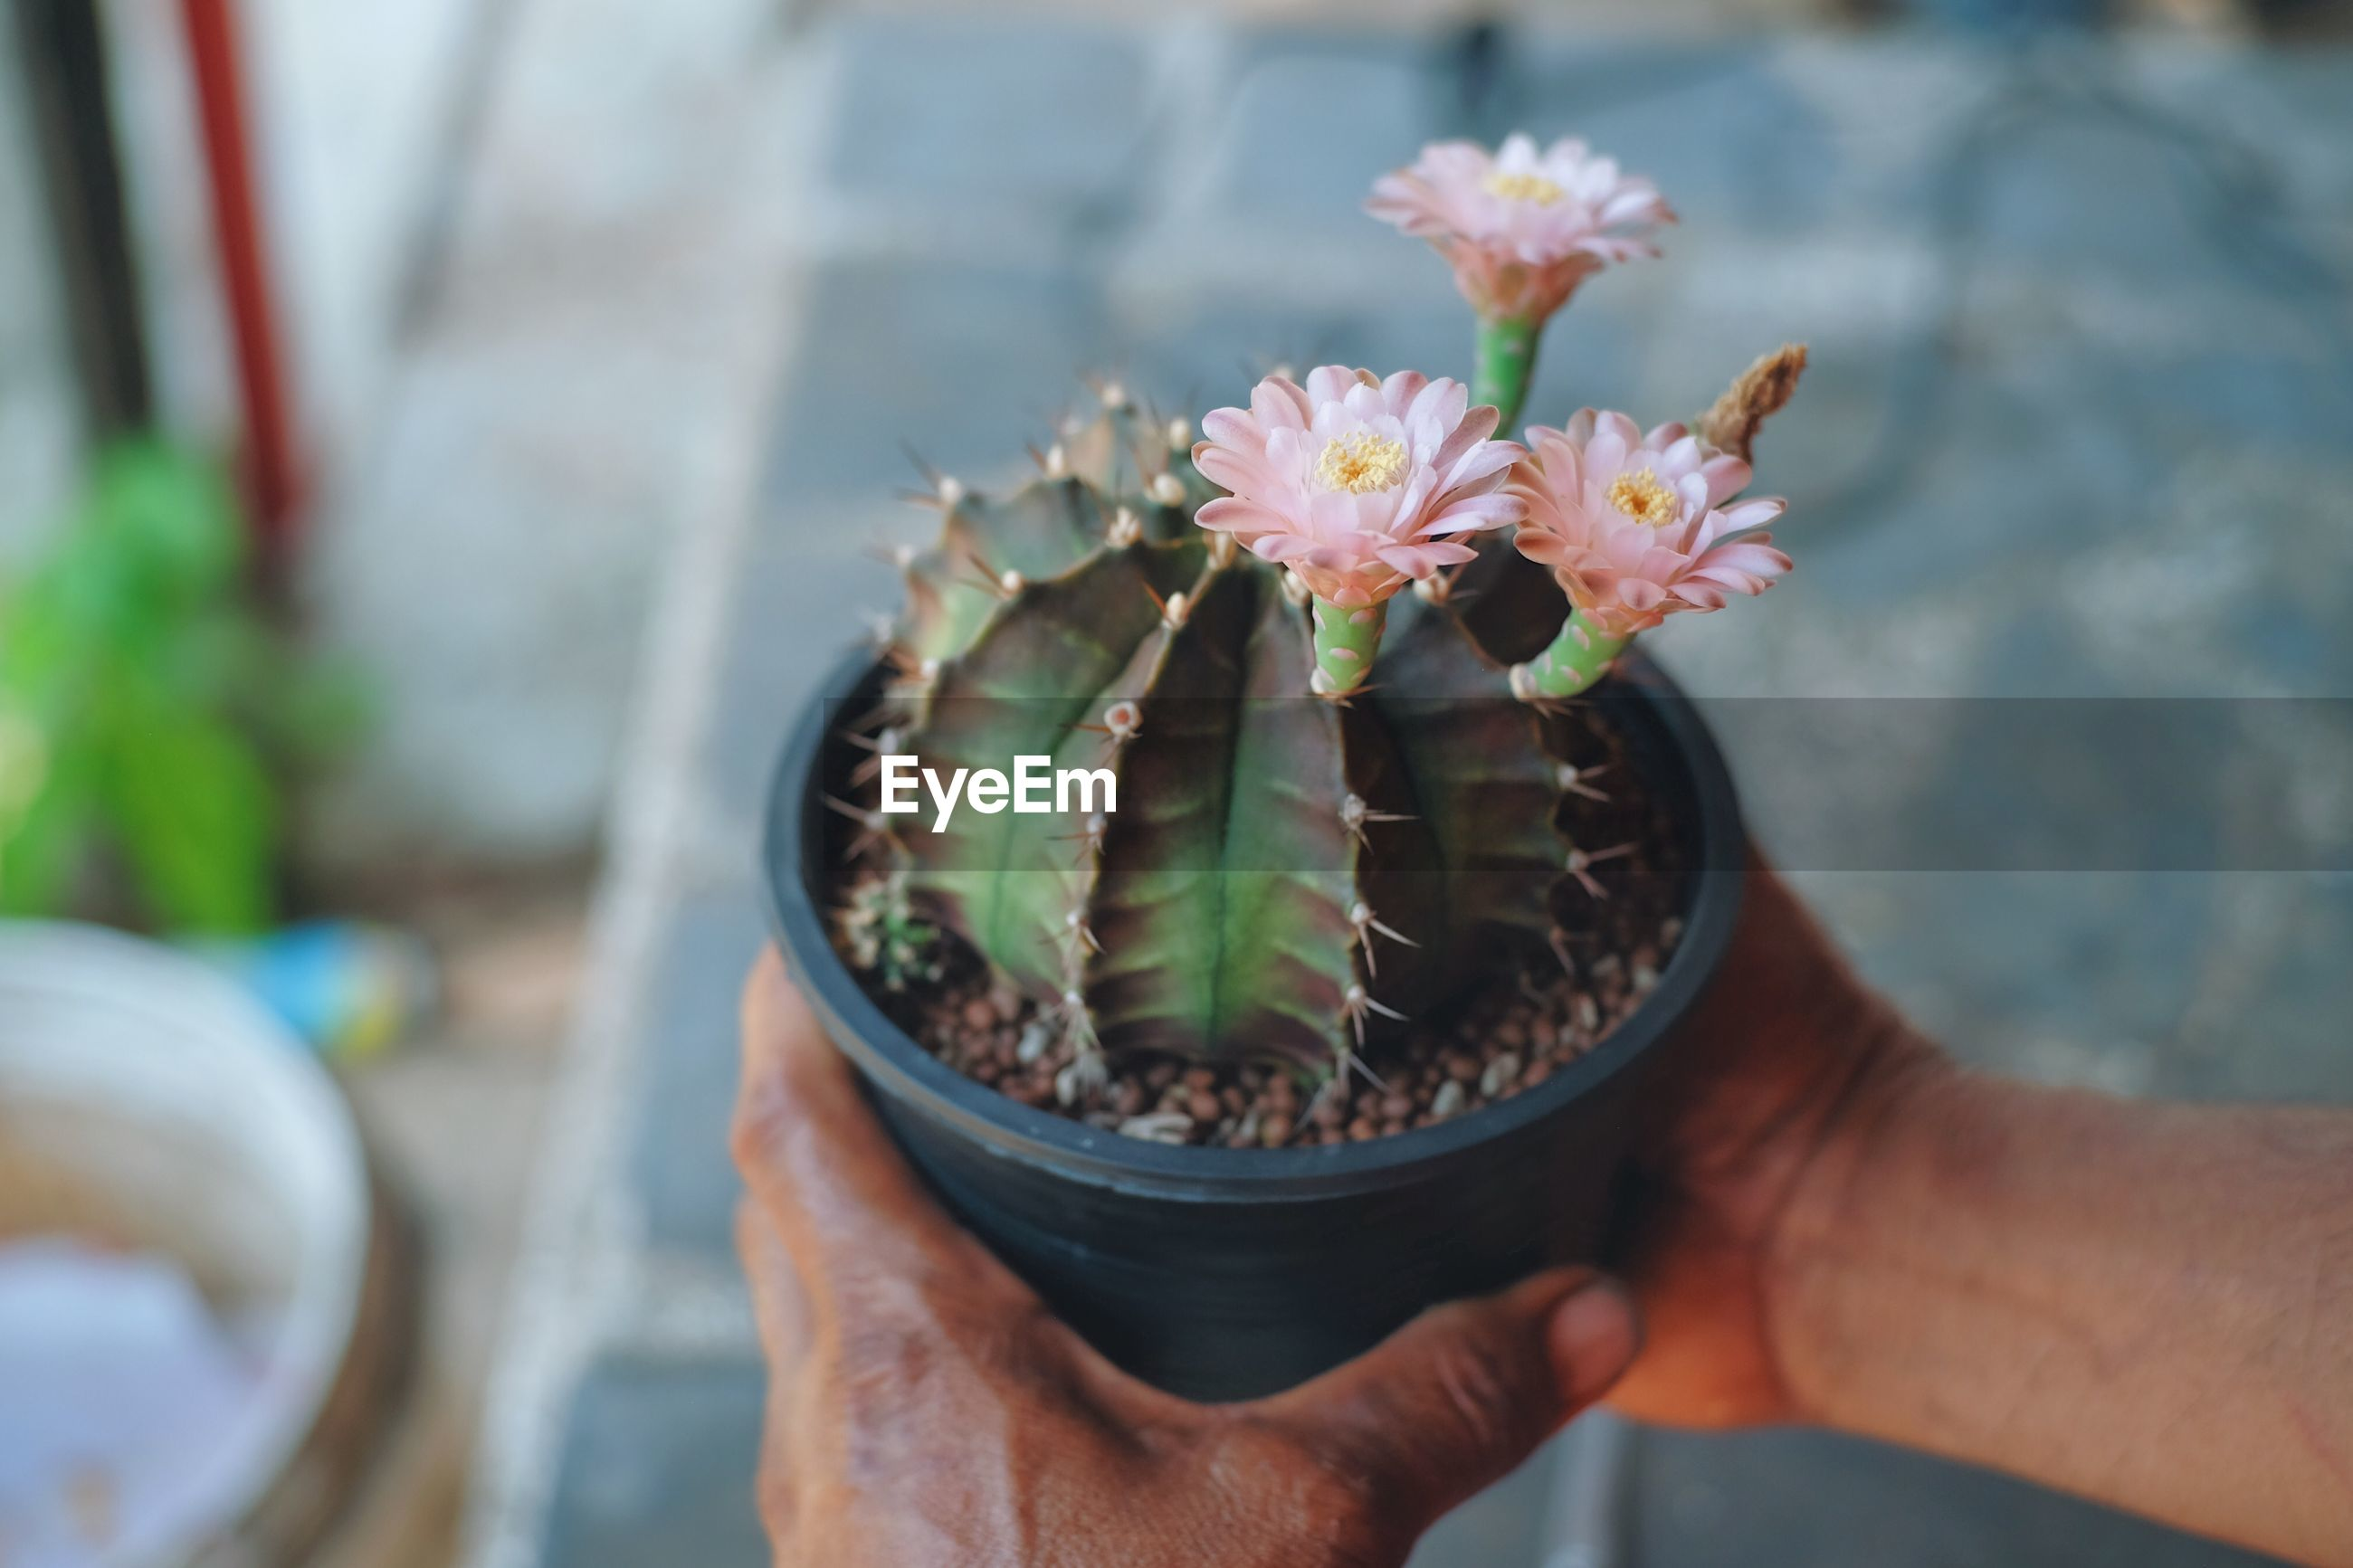 Cropped hand of person holding cactus flower pot